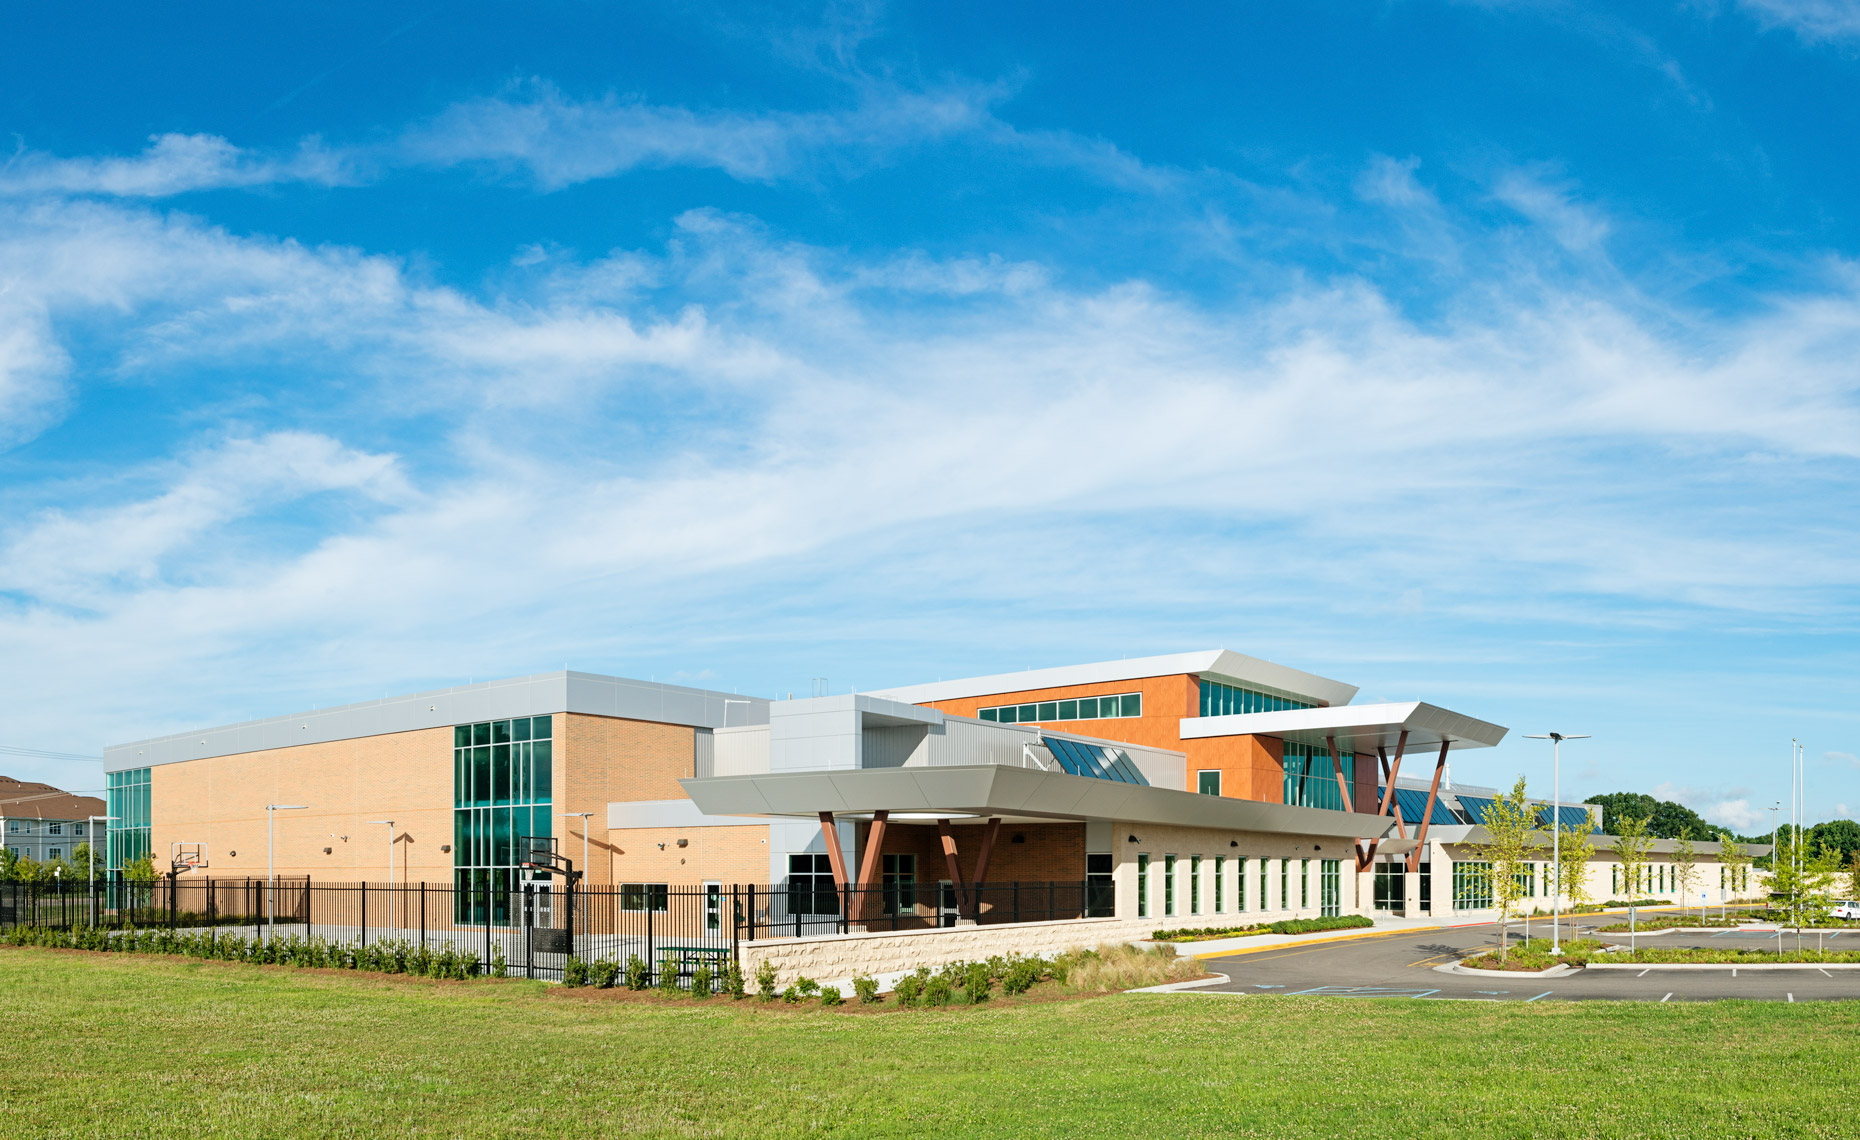 Williams Farm Recreation Center